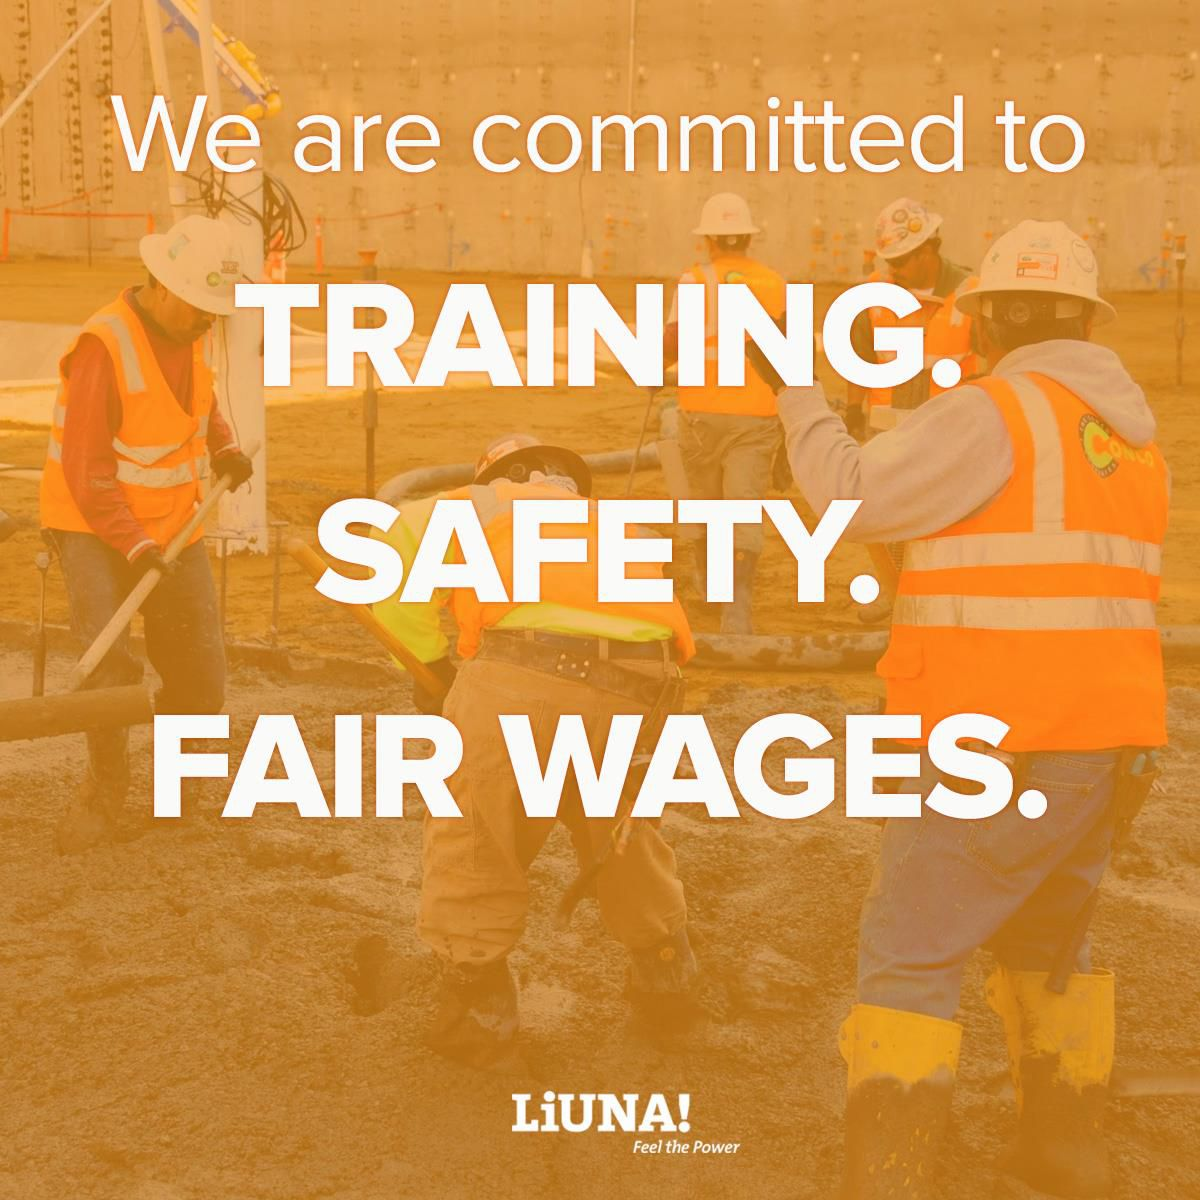 LiUNA Safety Training Fair Wages.jpg